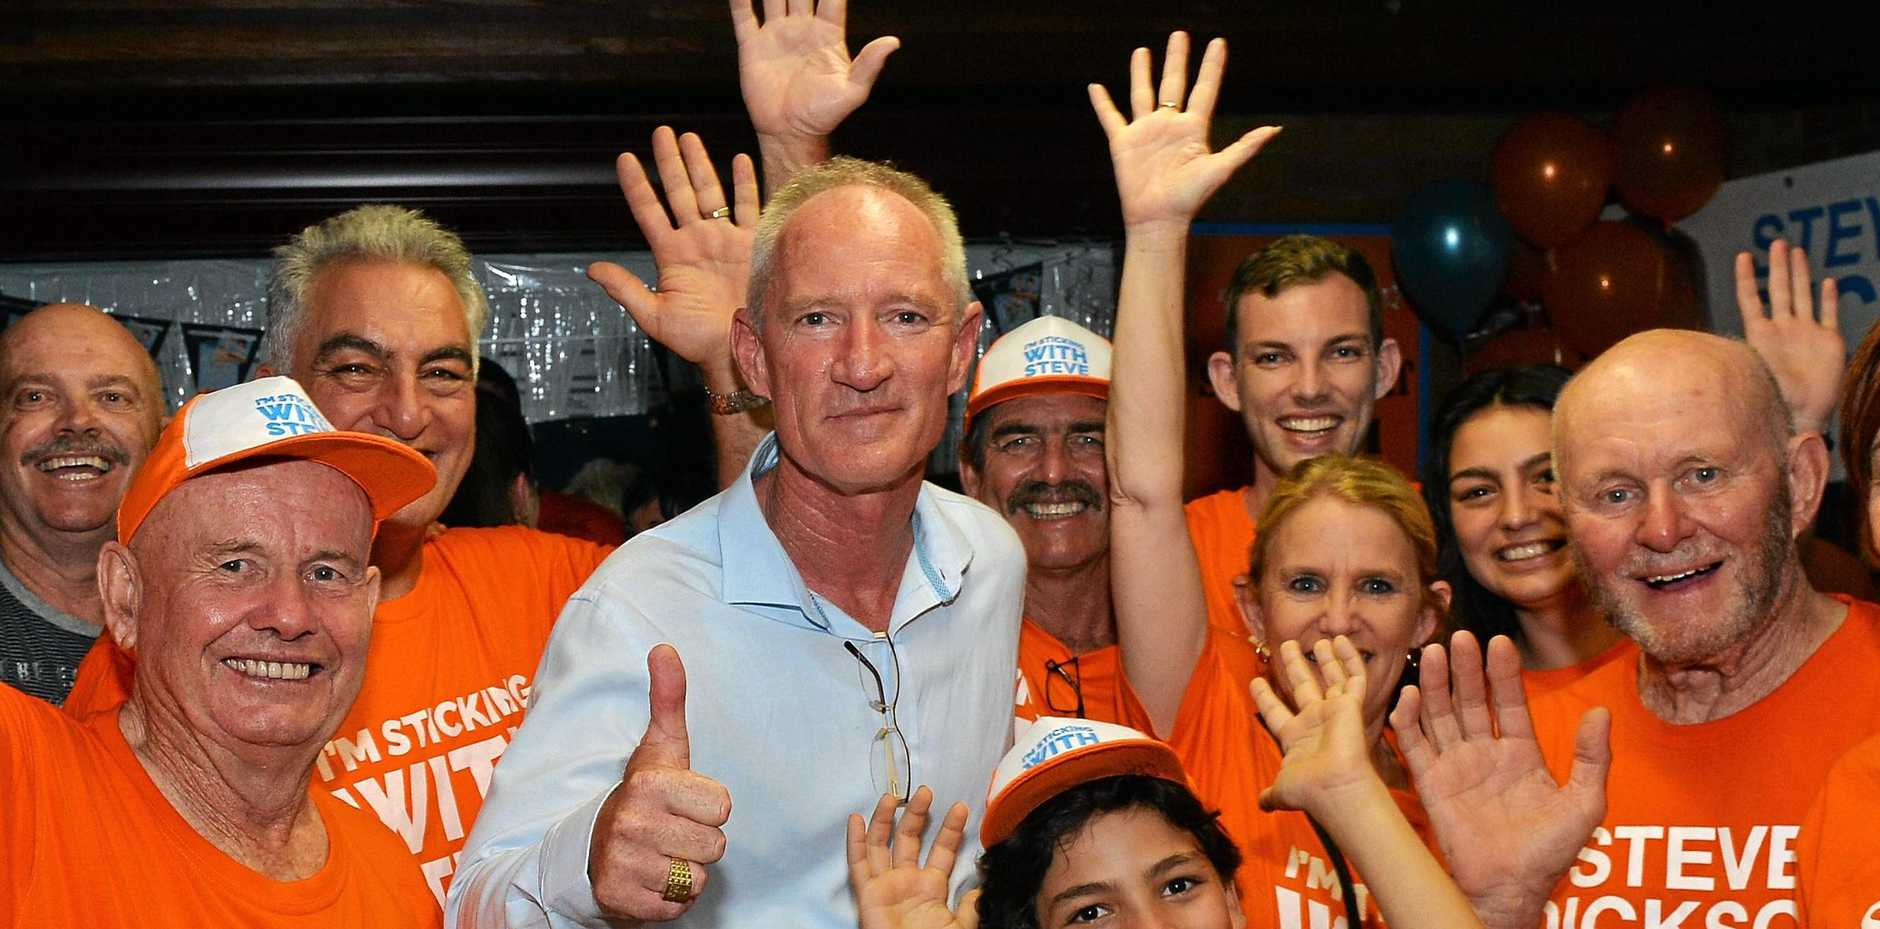 Steve Dickson maintained a brave face Saturday night as Buderim slipped from his grasp but he remains confident One Nation would win a number of seats in the new parliament.